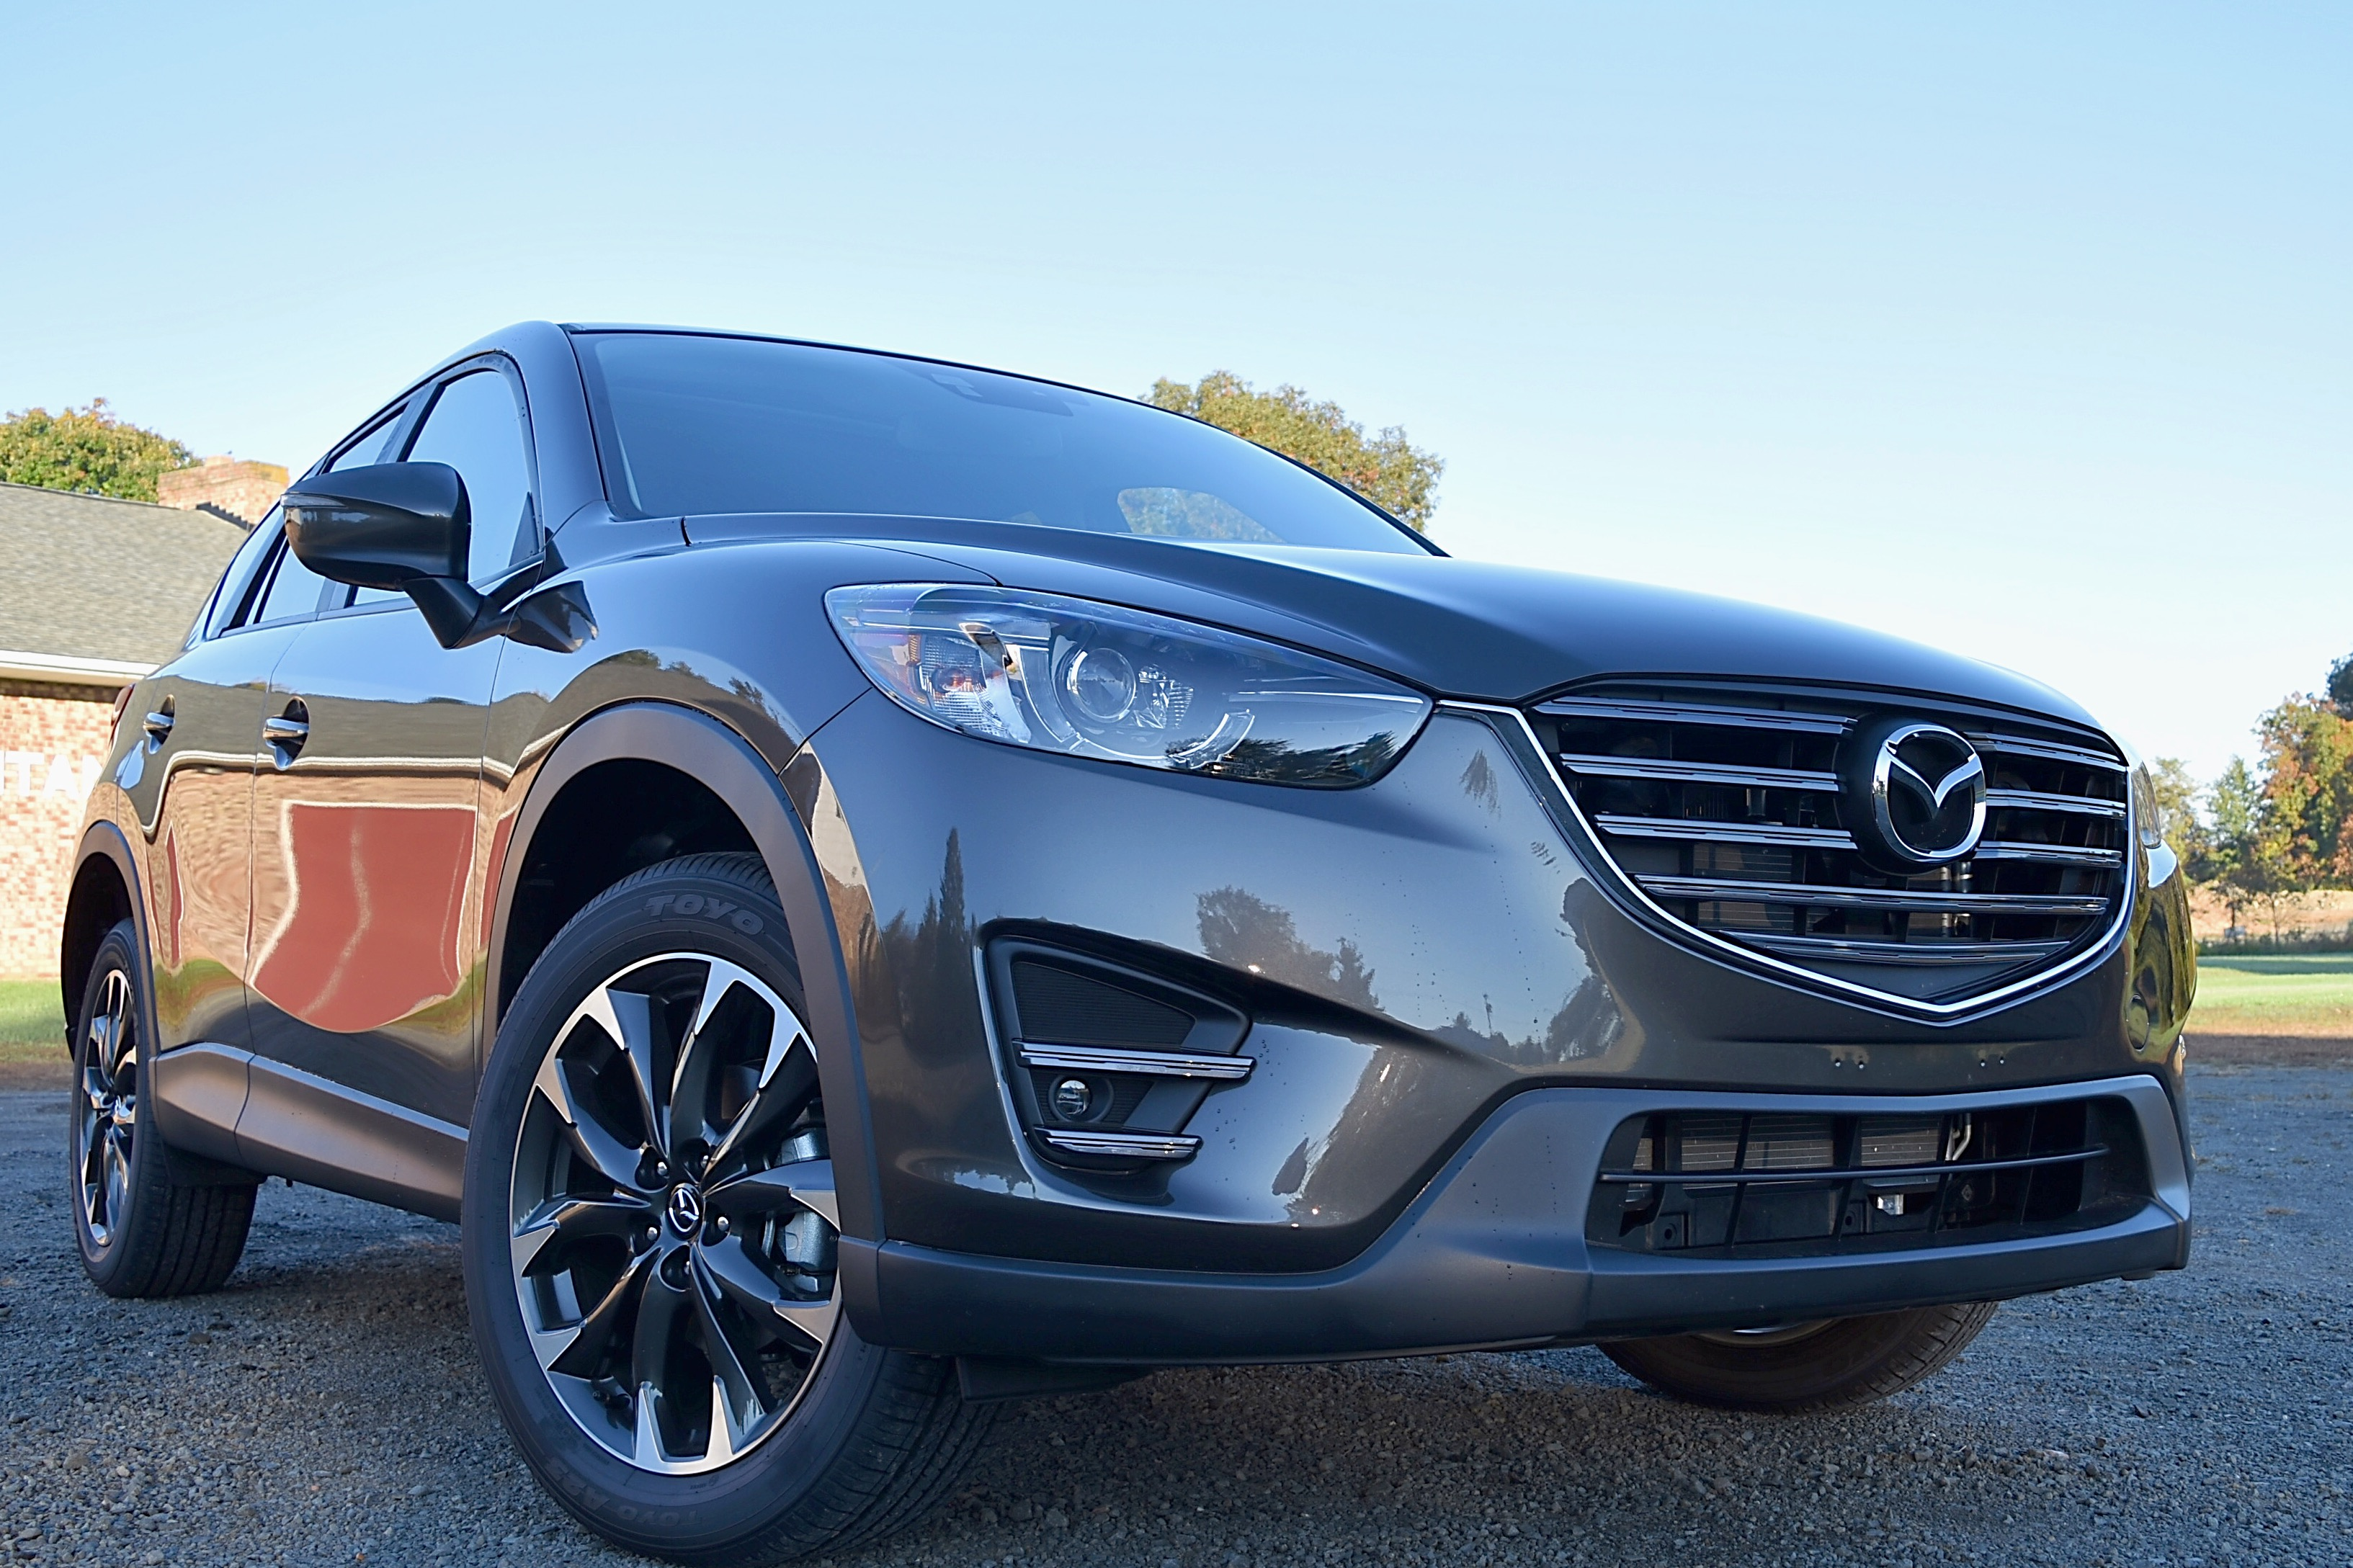 hyundai book comparison tinadh com caradvice review by of sport in cx australia isabella v kia innovative mazda sportage maxx tucson